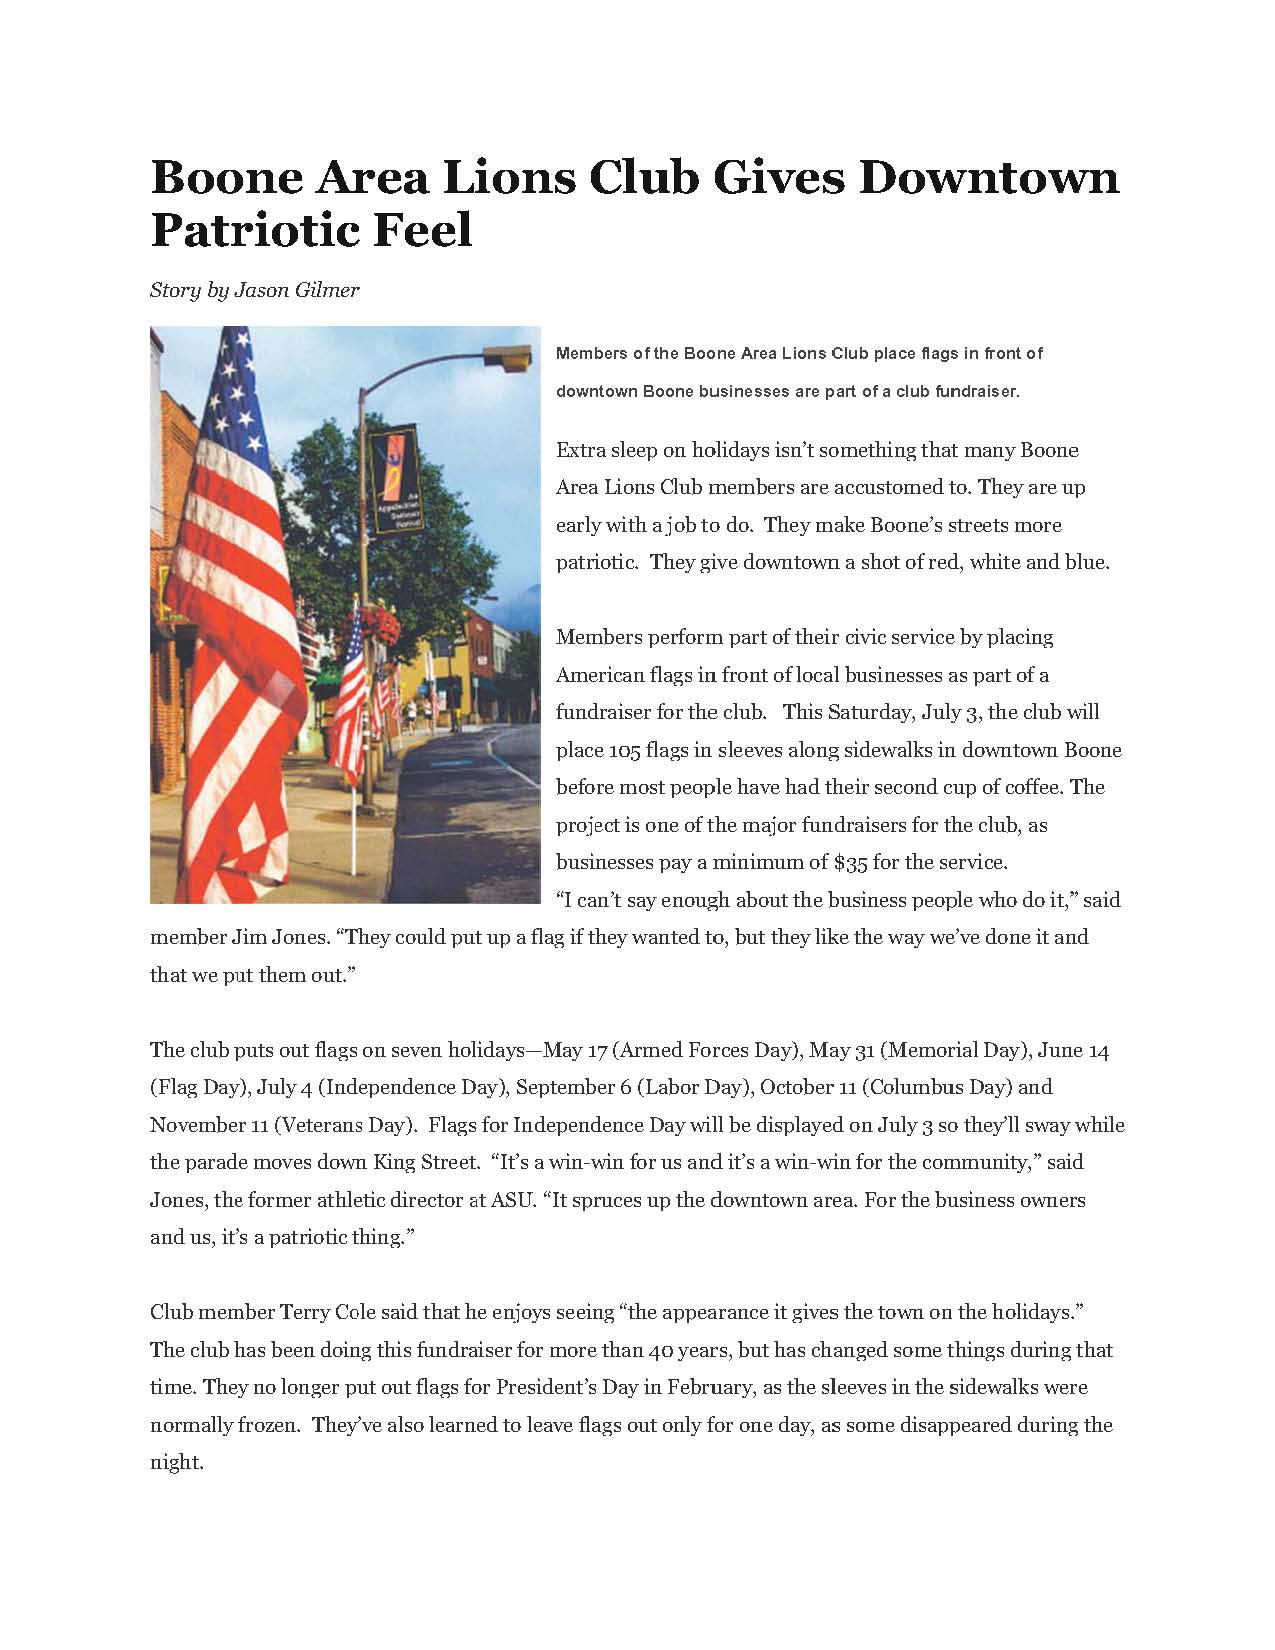 4th of July Story